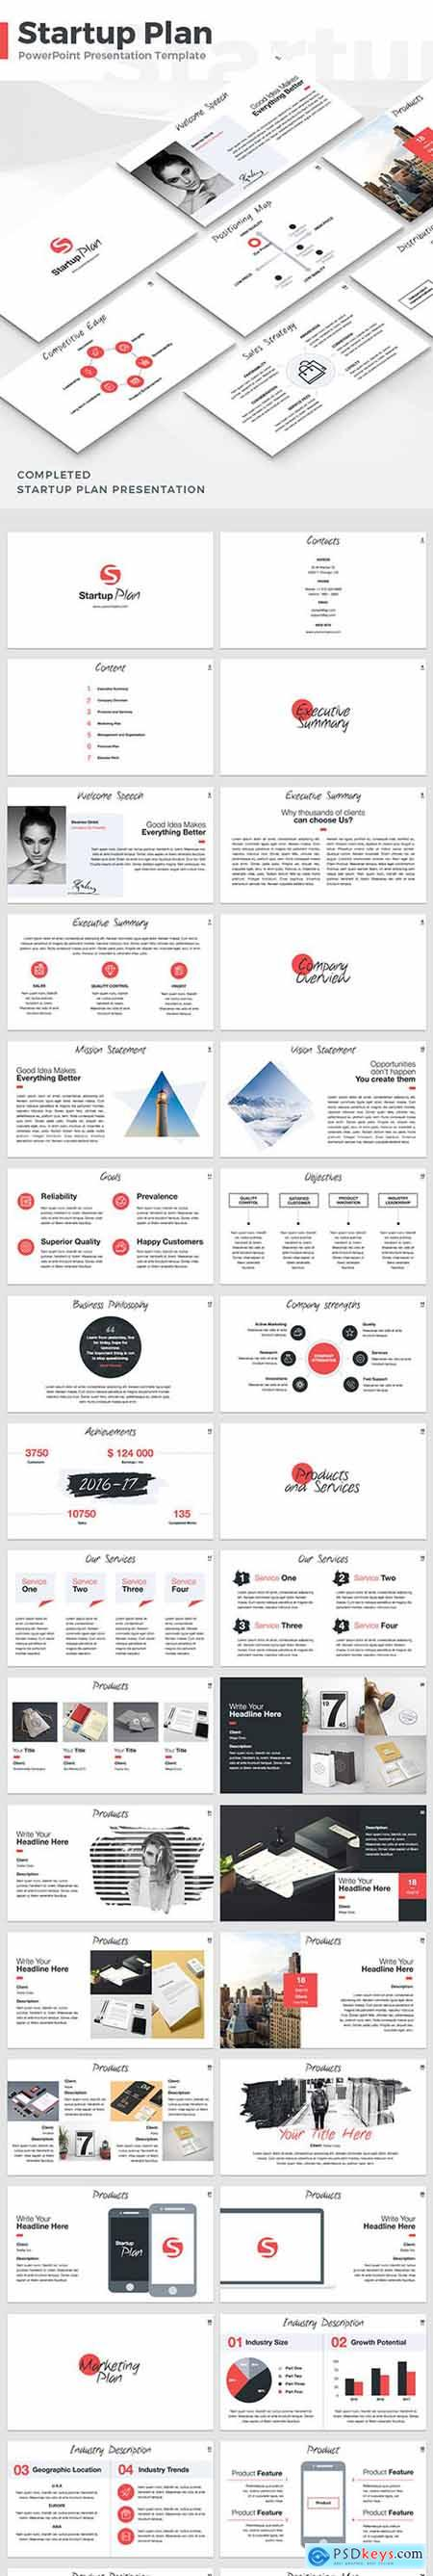 Startup Plan - PowerPoint Template 18971690